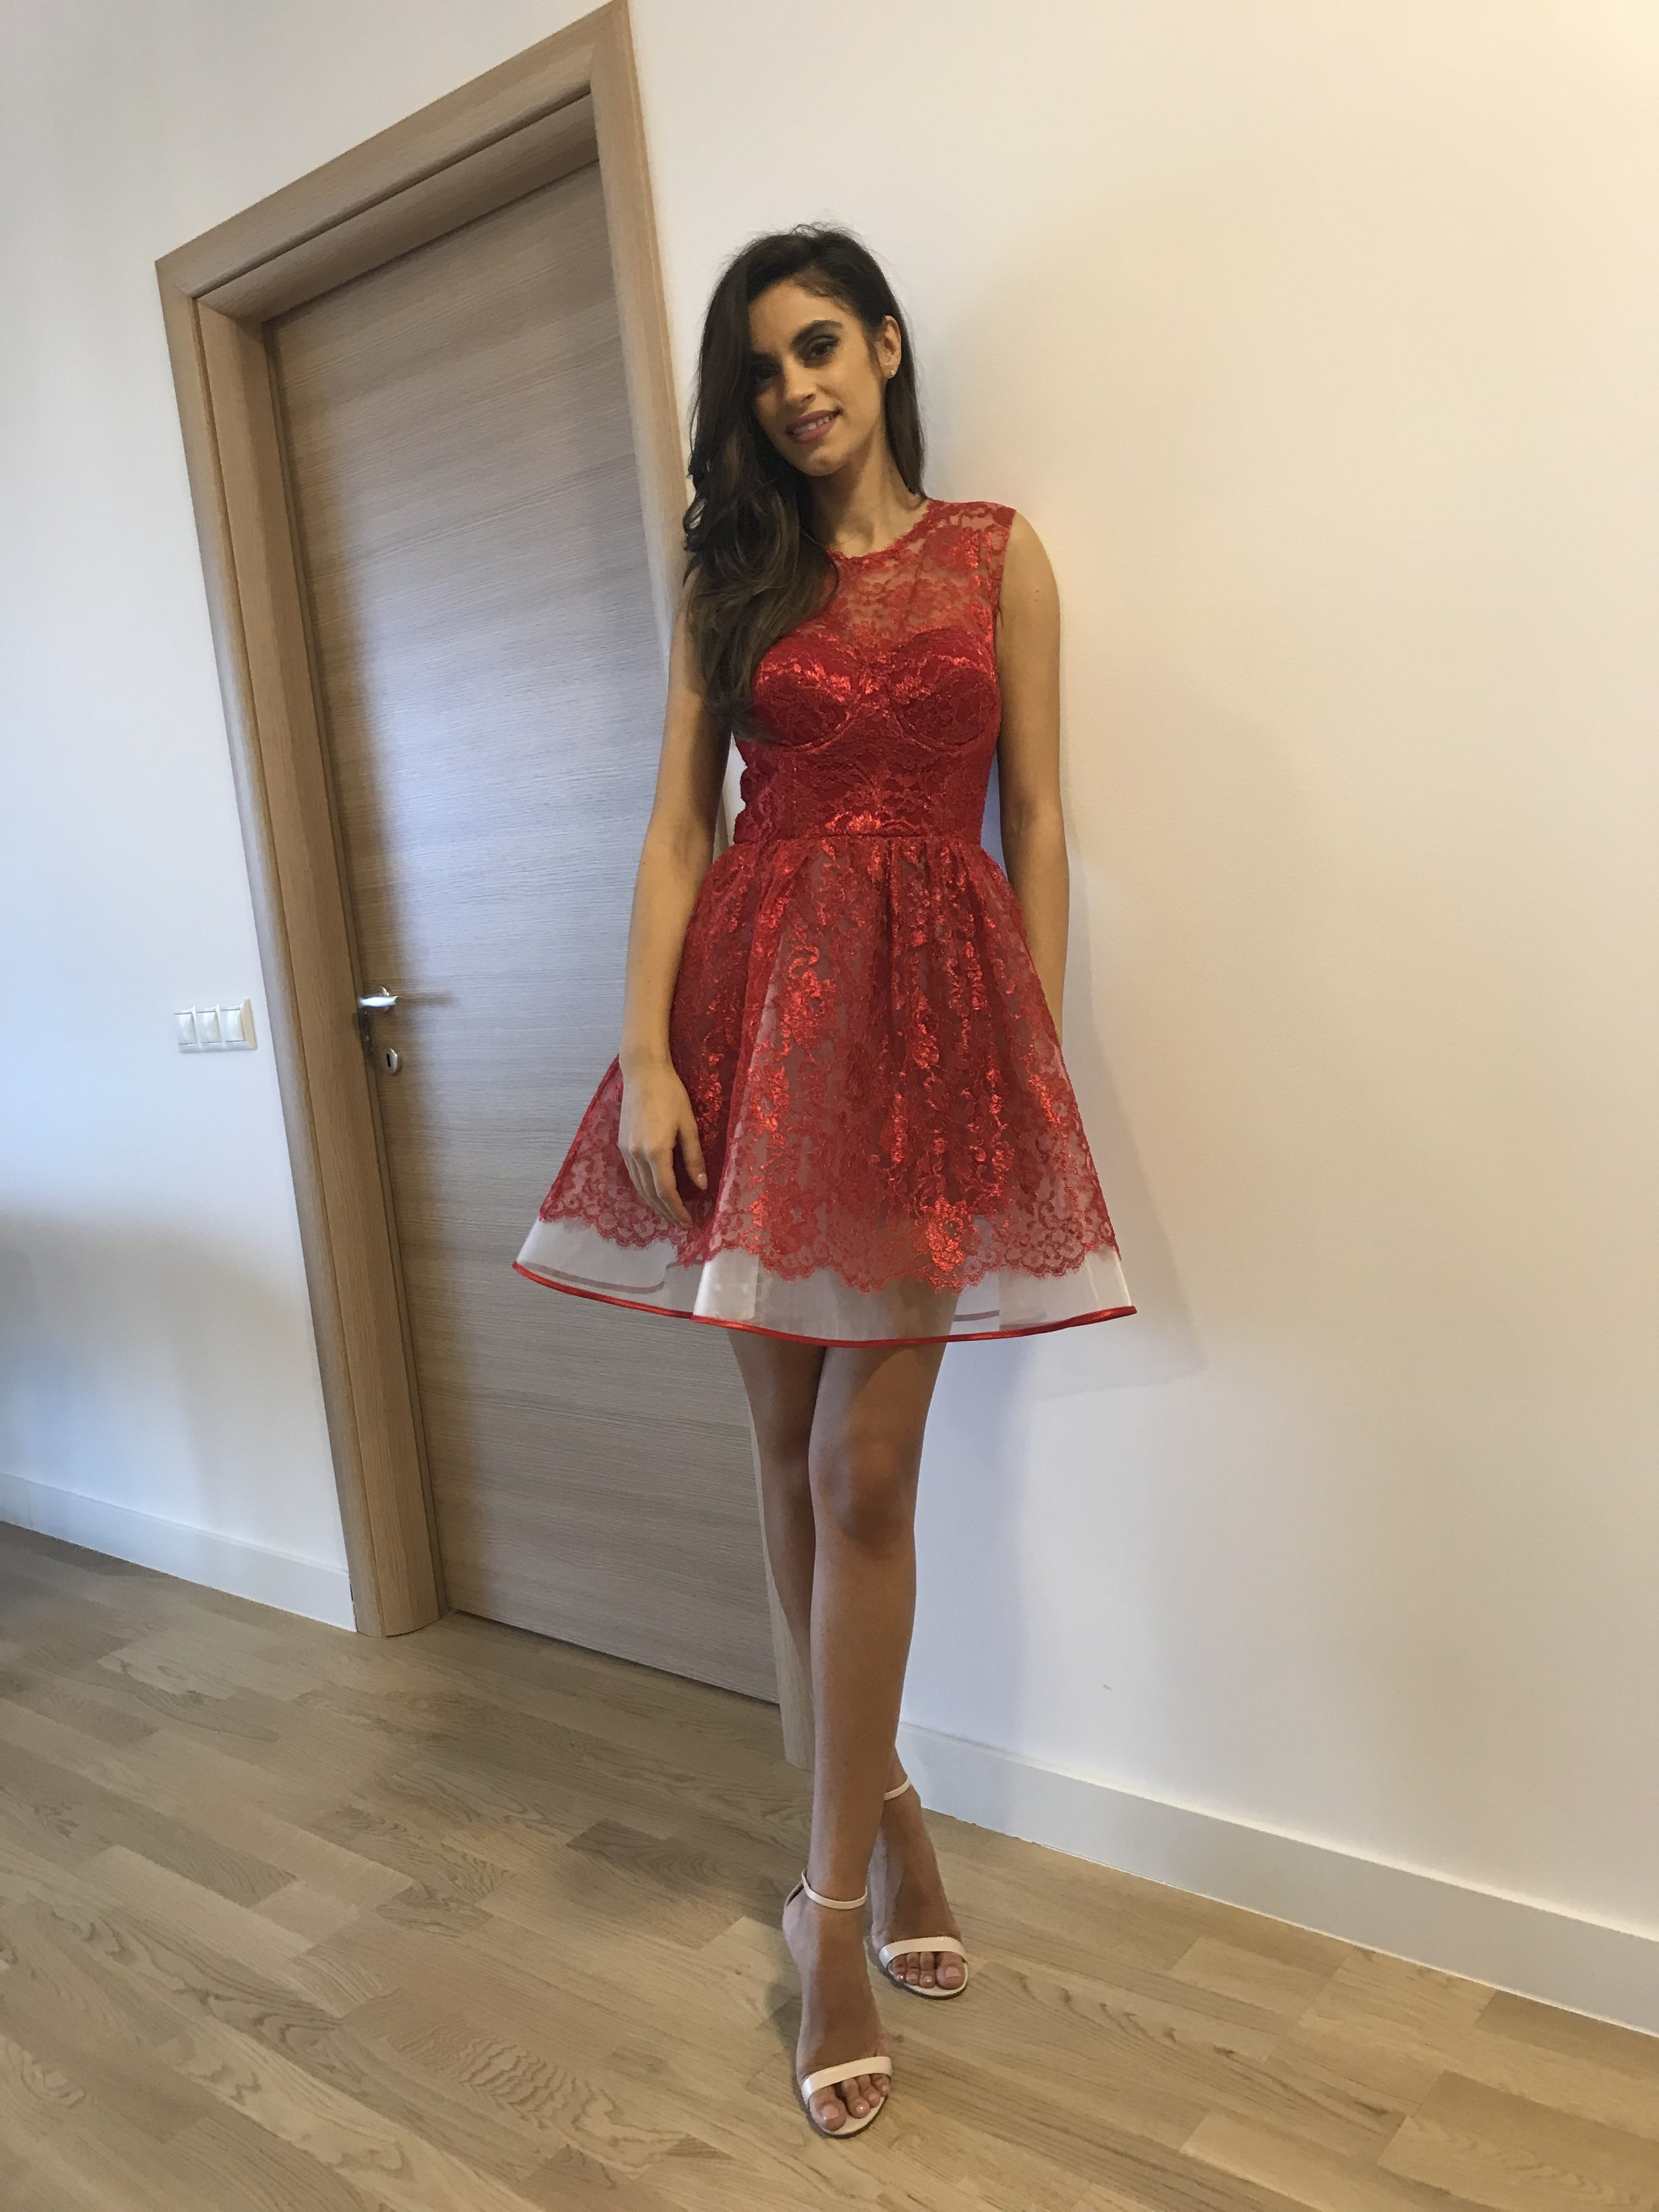 super cute ee471 1c423 Abito rosso in pizzo chantilly